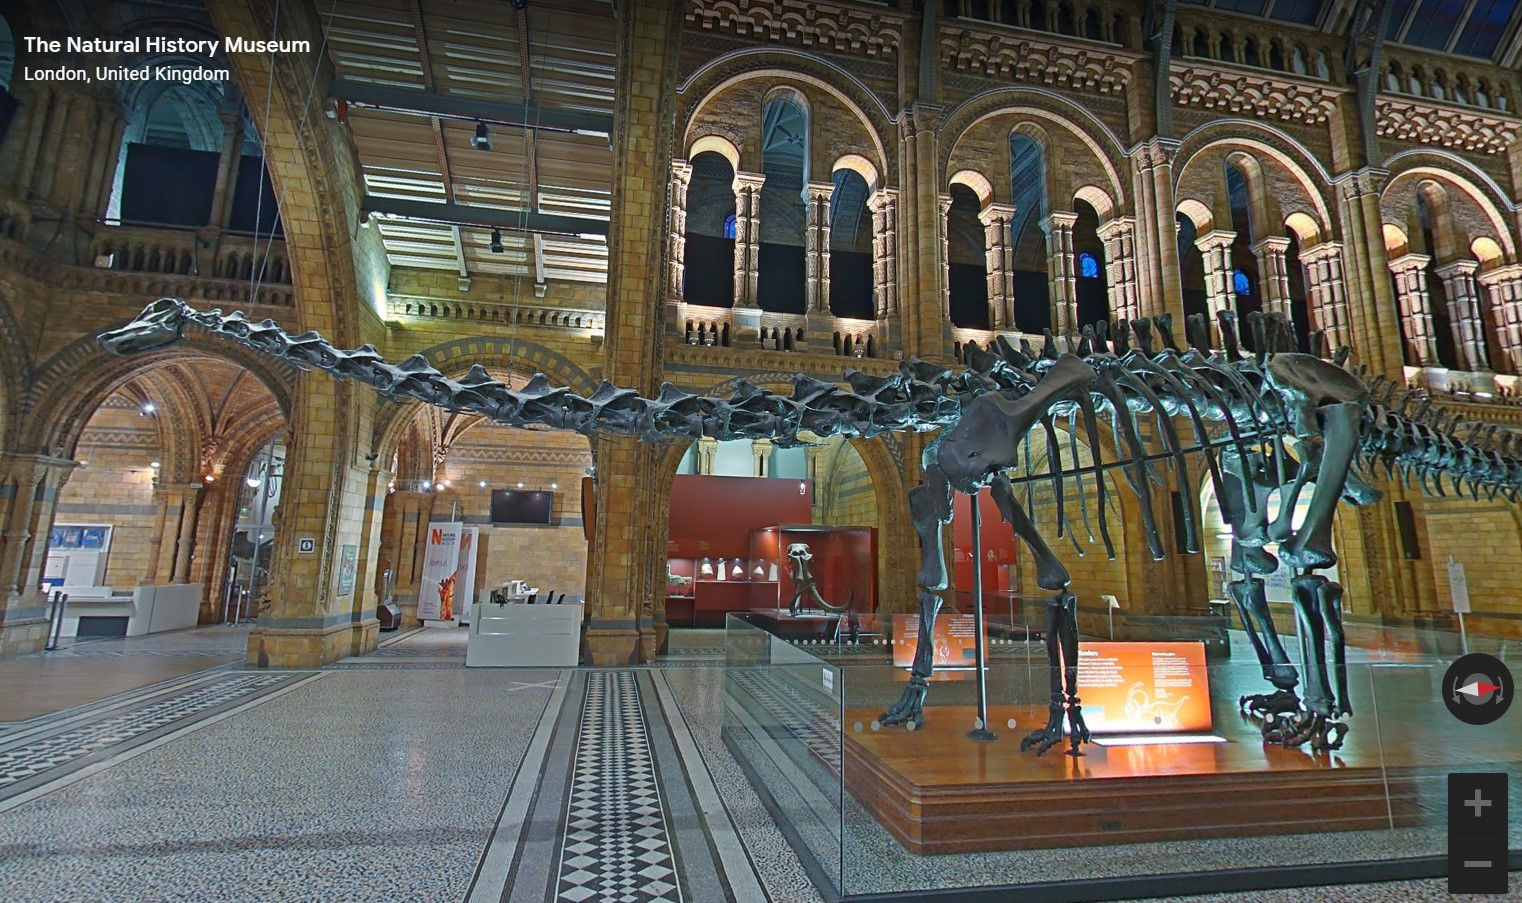 The Natural History Museum London, United Kingdom